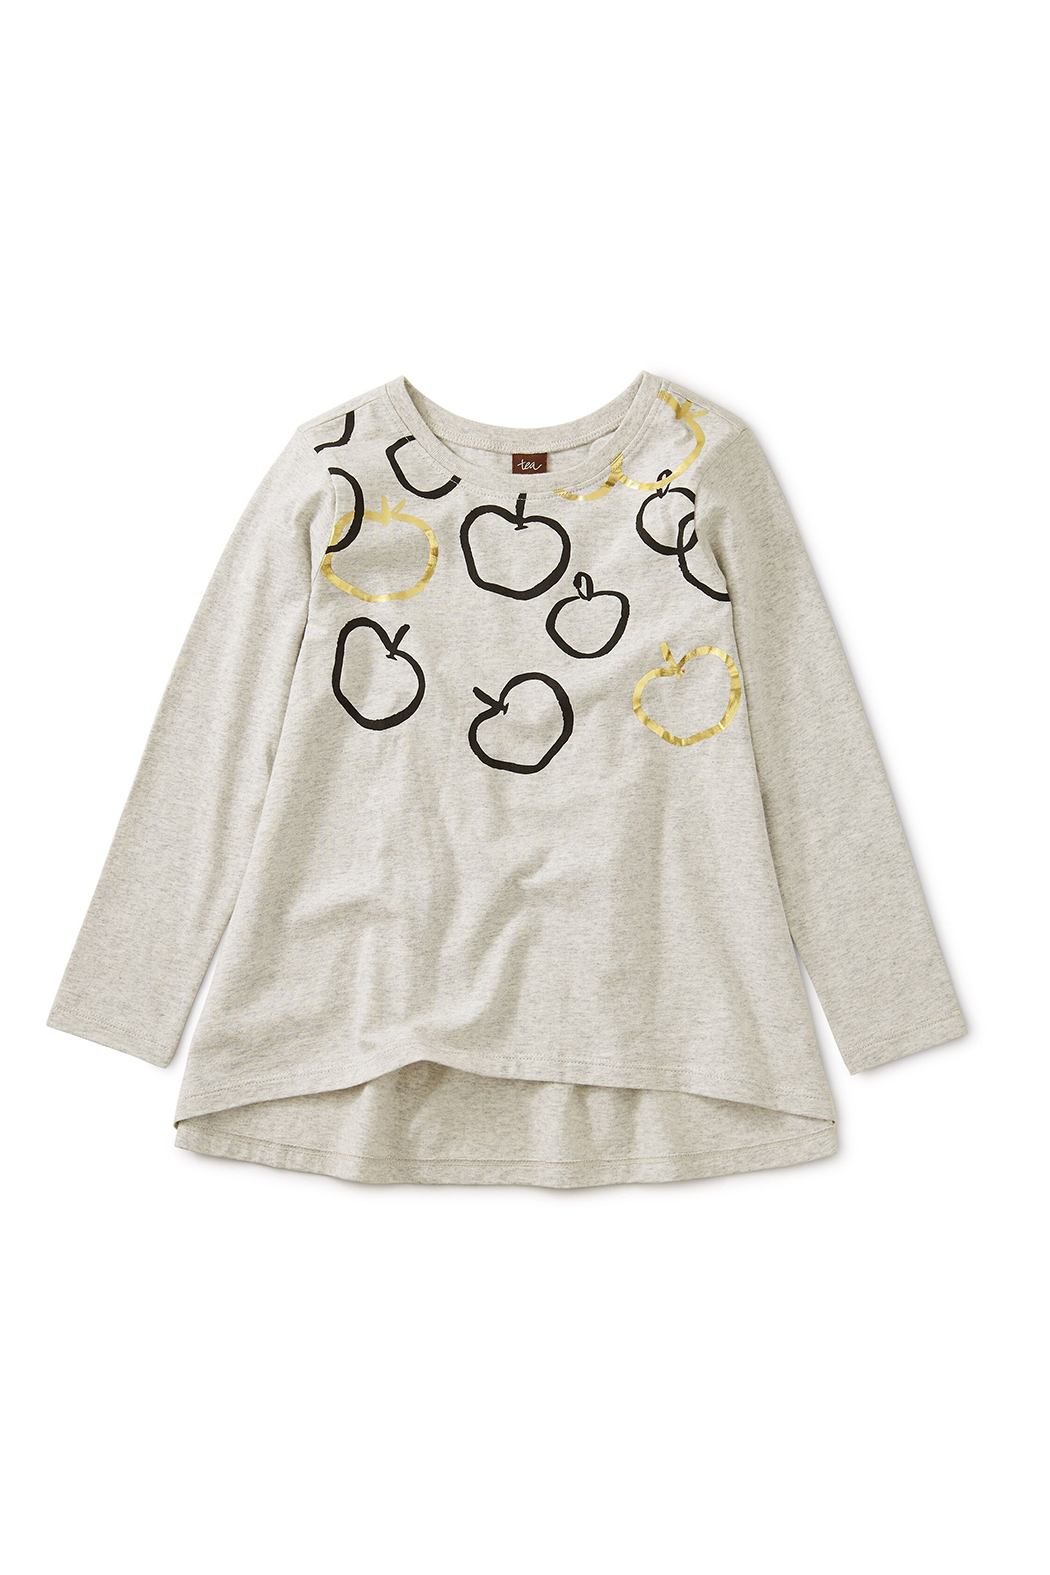 Tea Collection Golden Bounty Graphic Twirl Top - Main Image